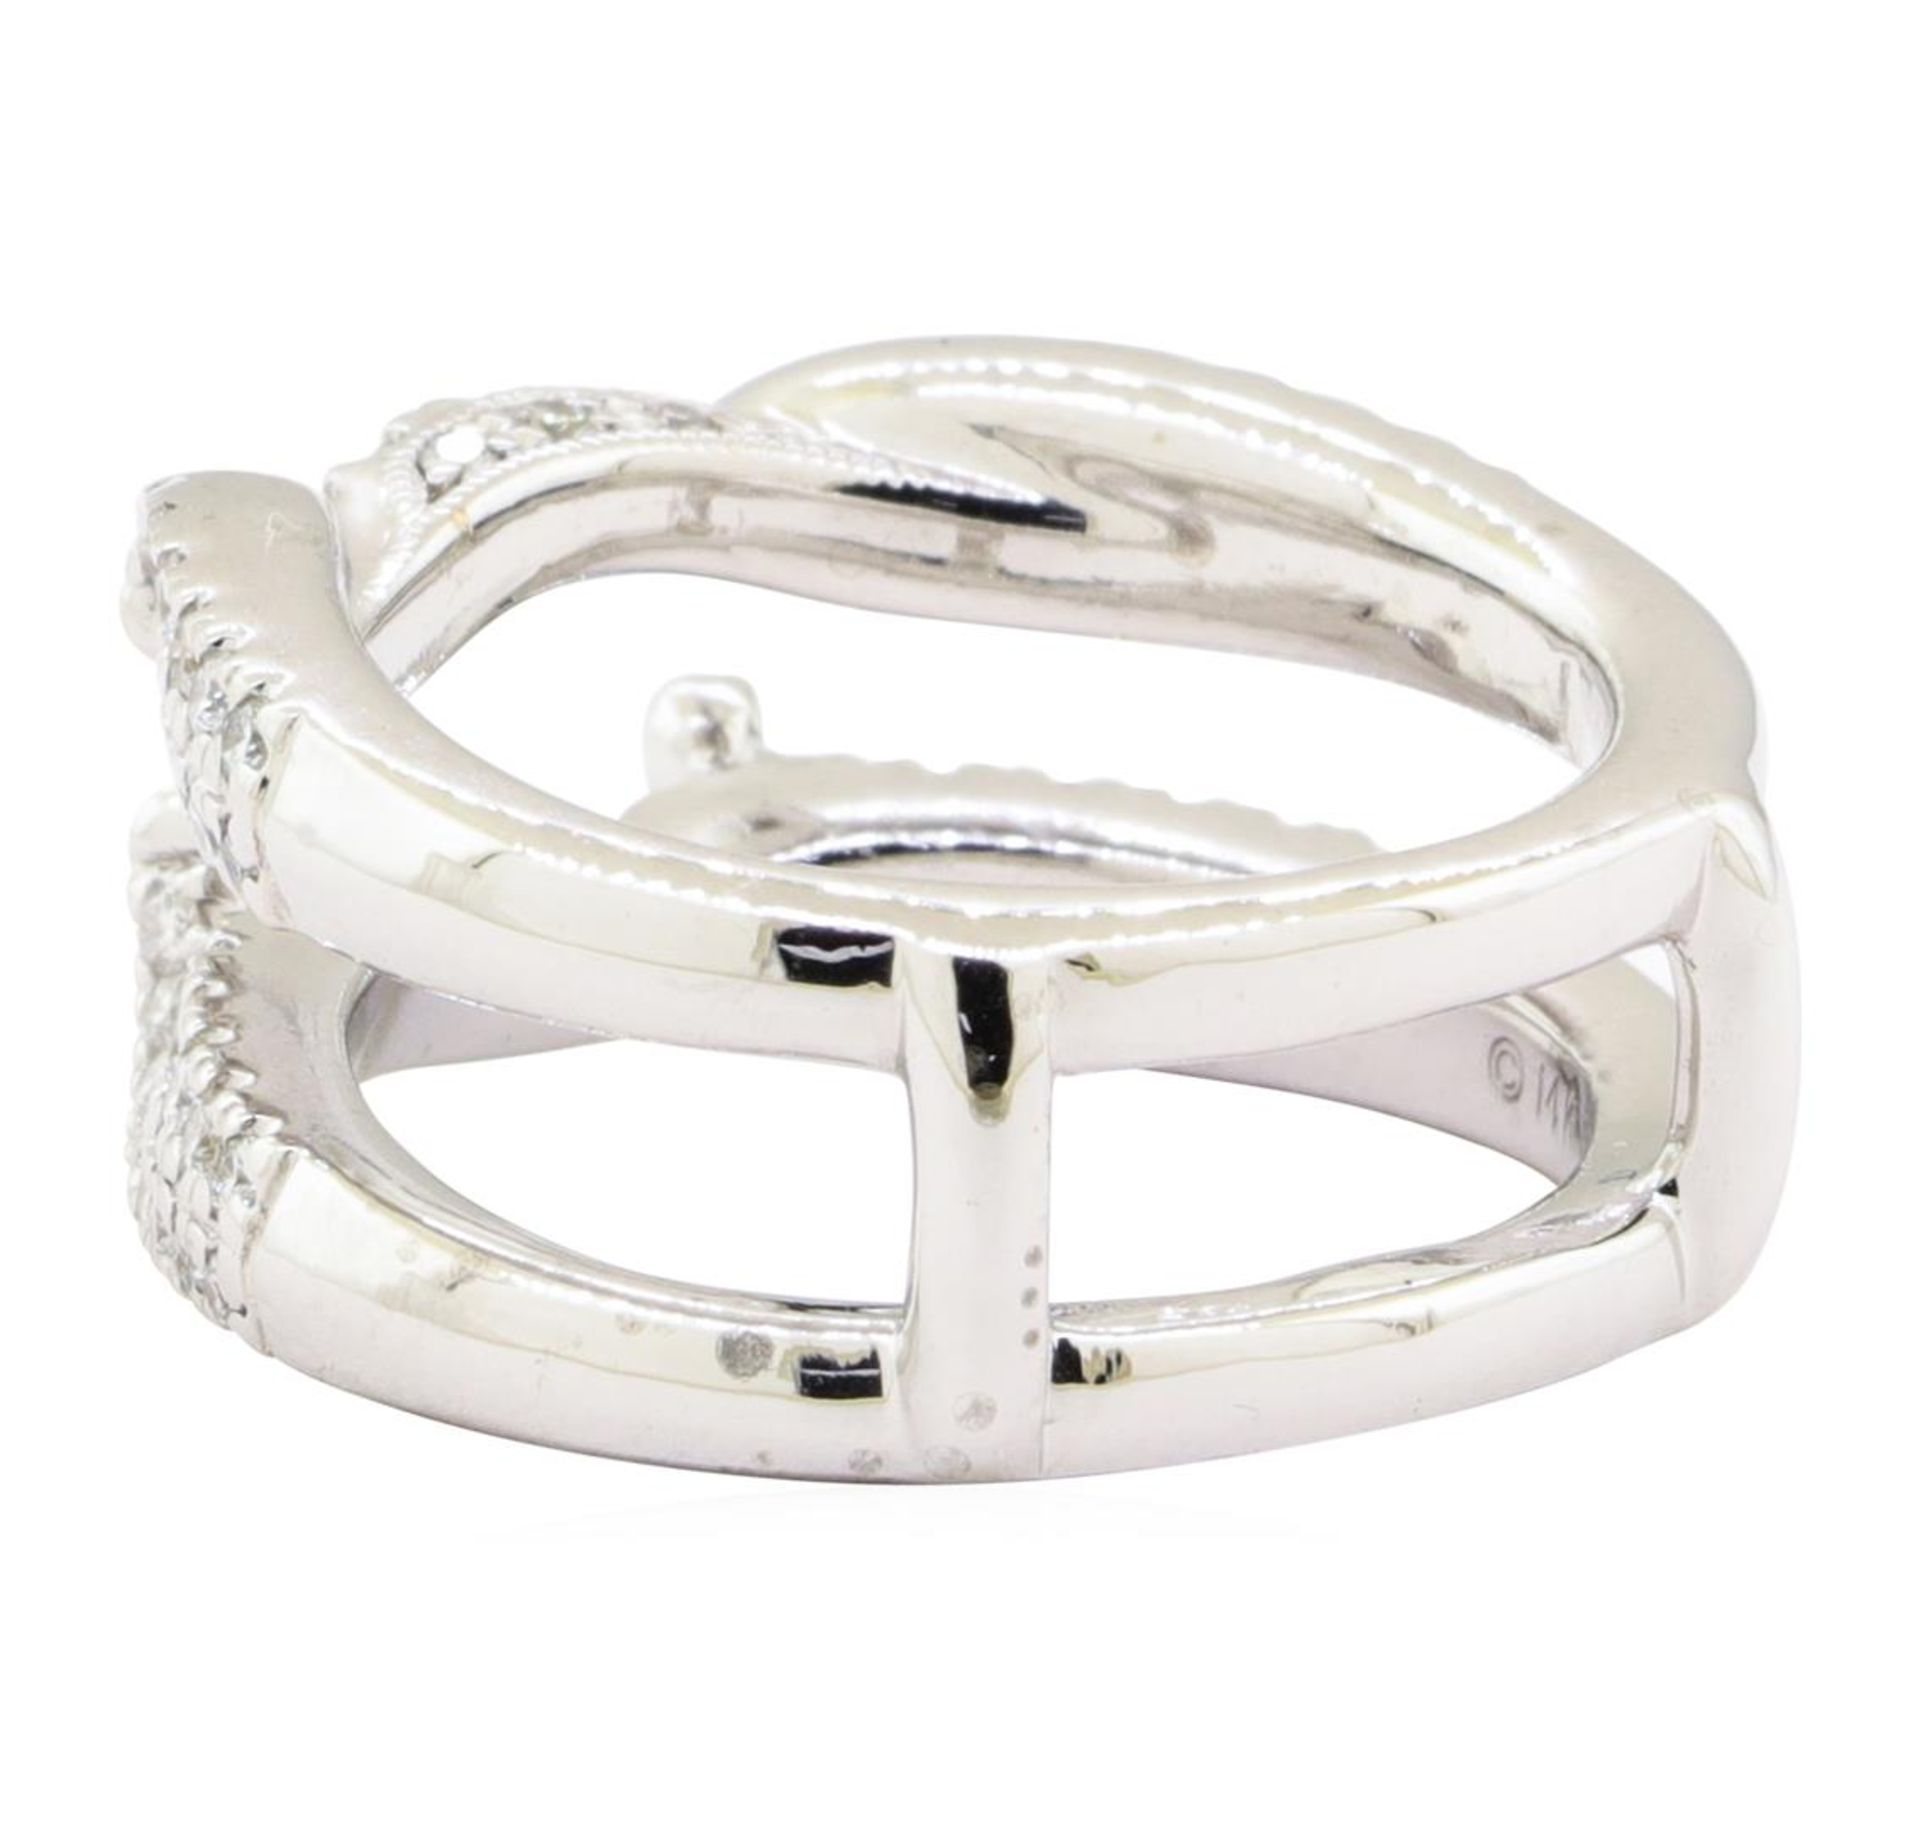 0.70 ctw Diamond Ring Guard - 14KT White Gold - Image 3 of 4